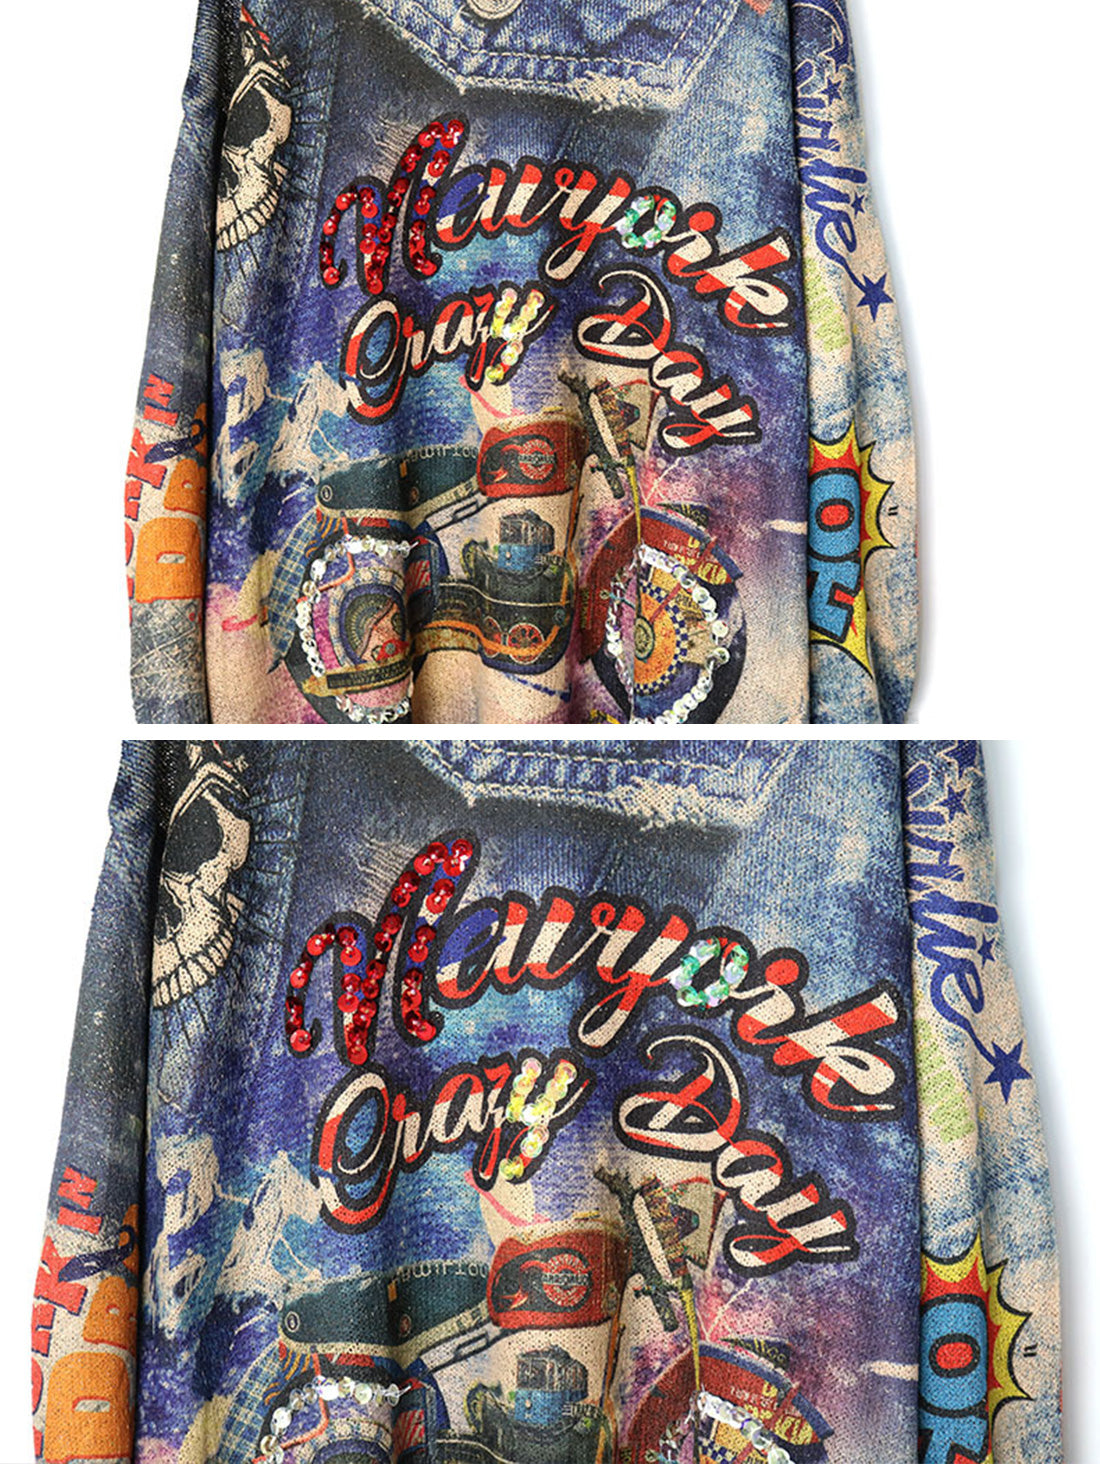 New York Crazy Days Sweater Top Details 3